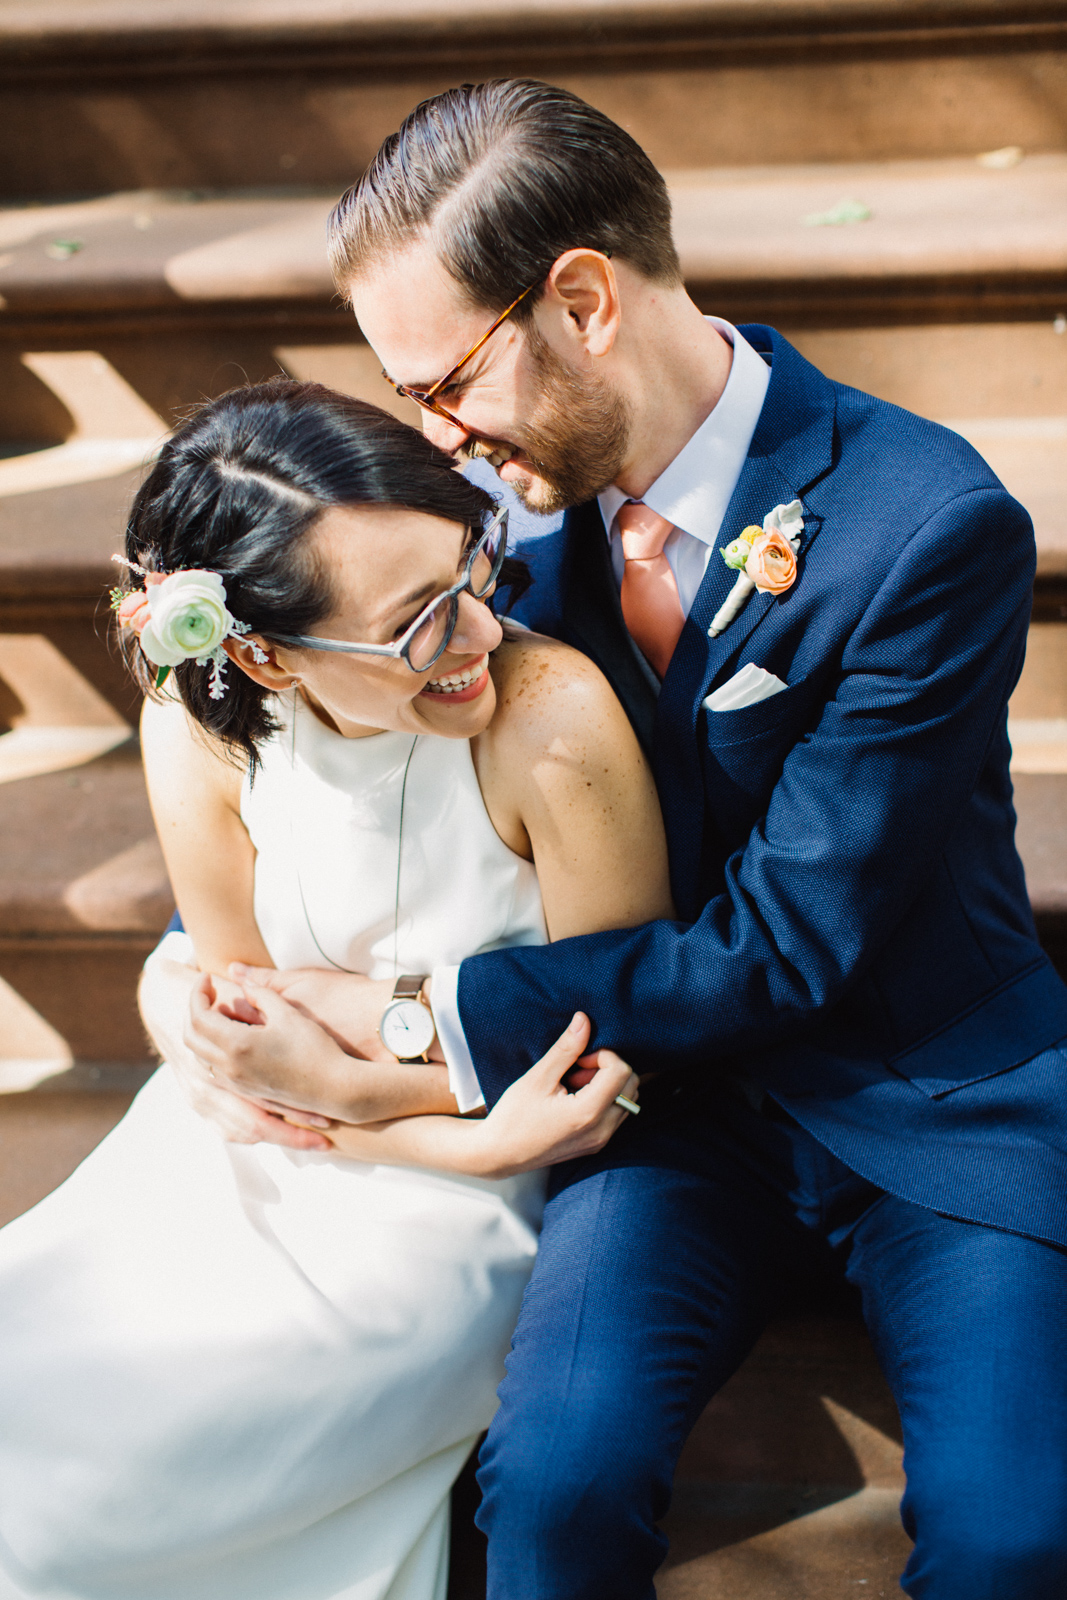 NYC Wedding Photography Brooklyn Wedding Maison Bay Greenpoint Photographer Boris Zaretsky_B2C4233.jpg